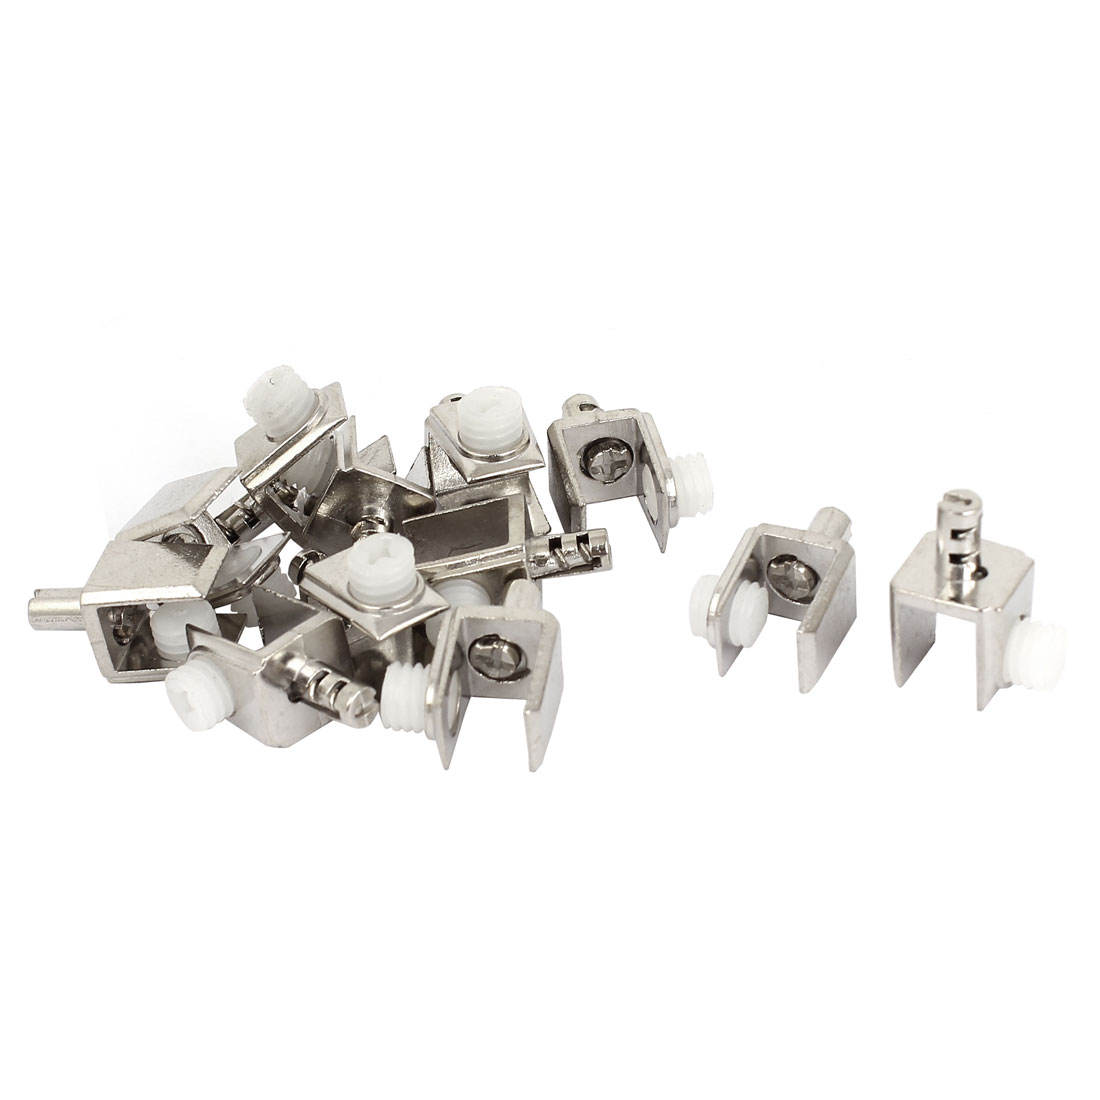 6mm-8mm Thickness Adjustable Screw Zinc Alloy Glass Clip Clamp 12 Pcs